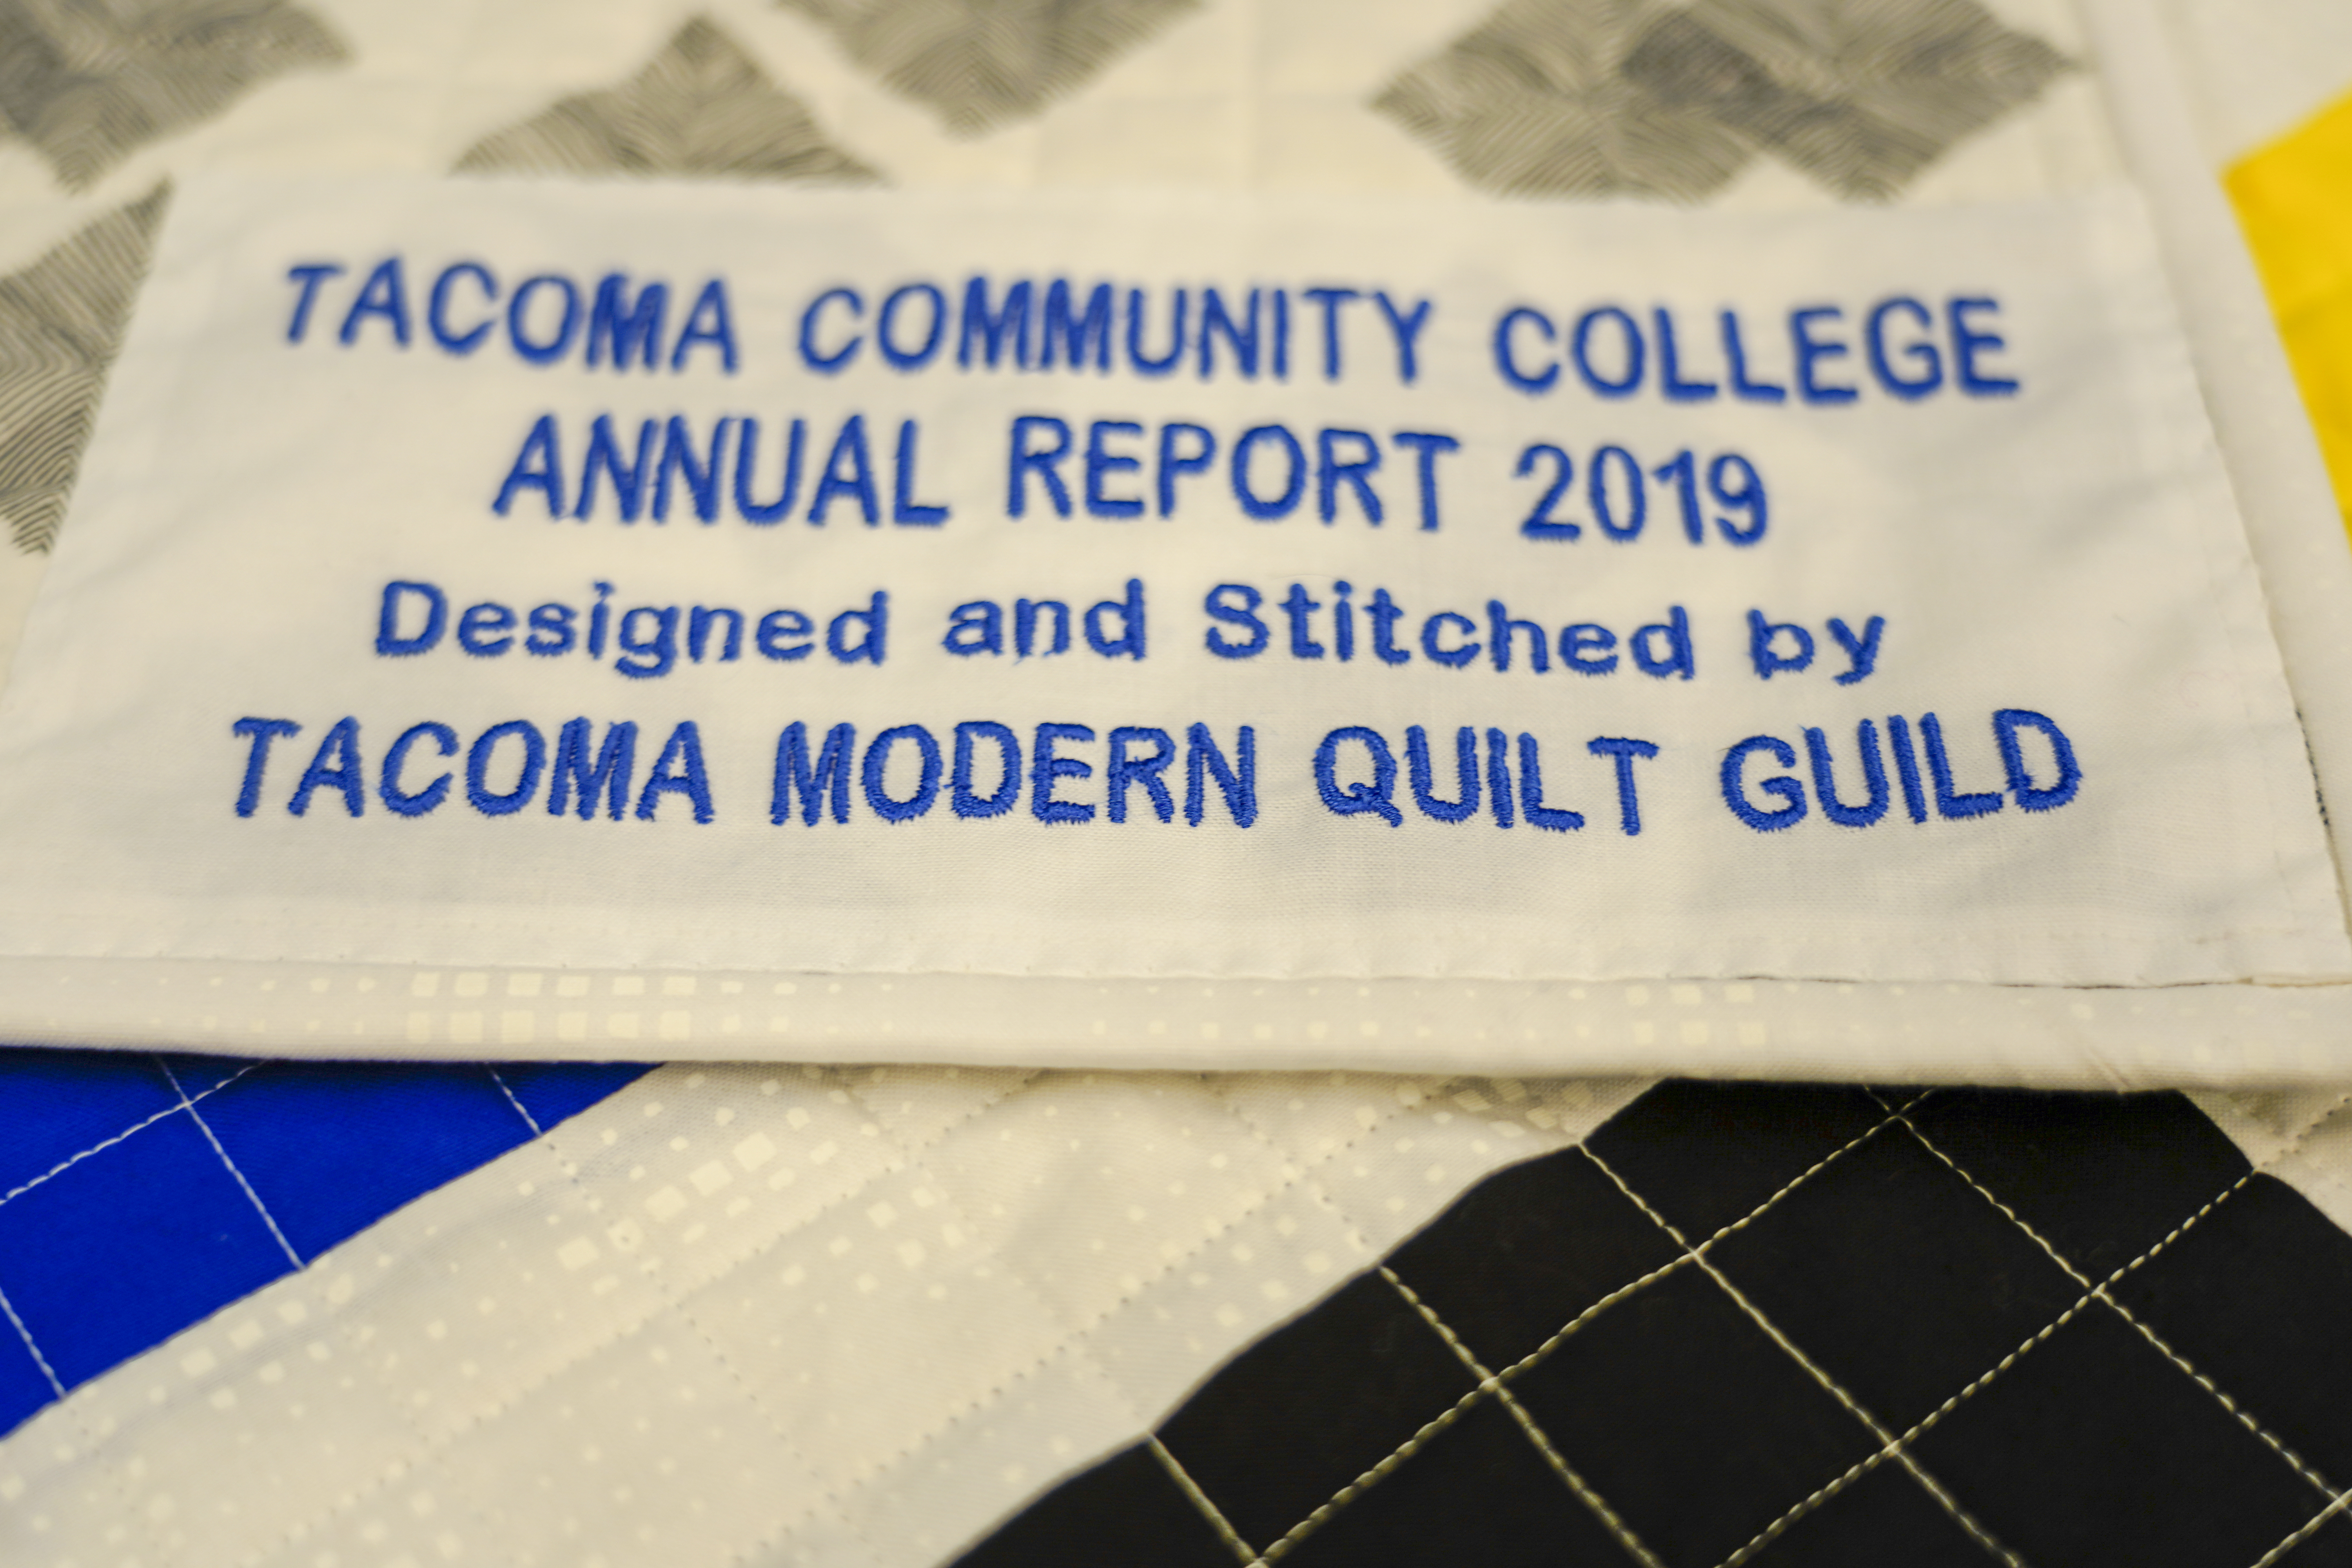 TCC Annual Report Quilt Lable